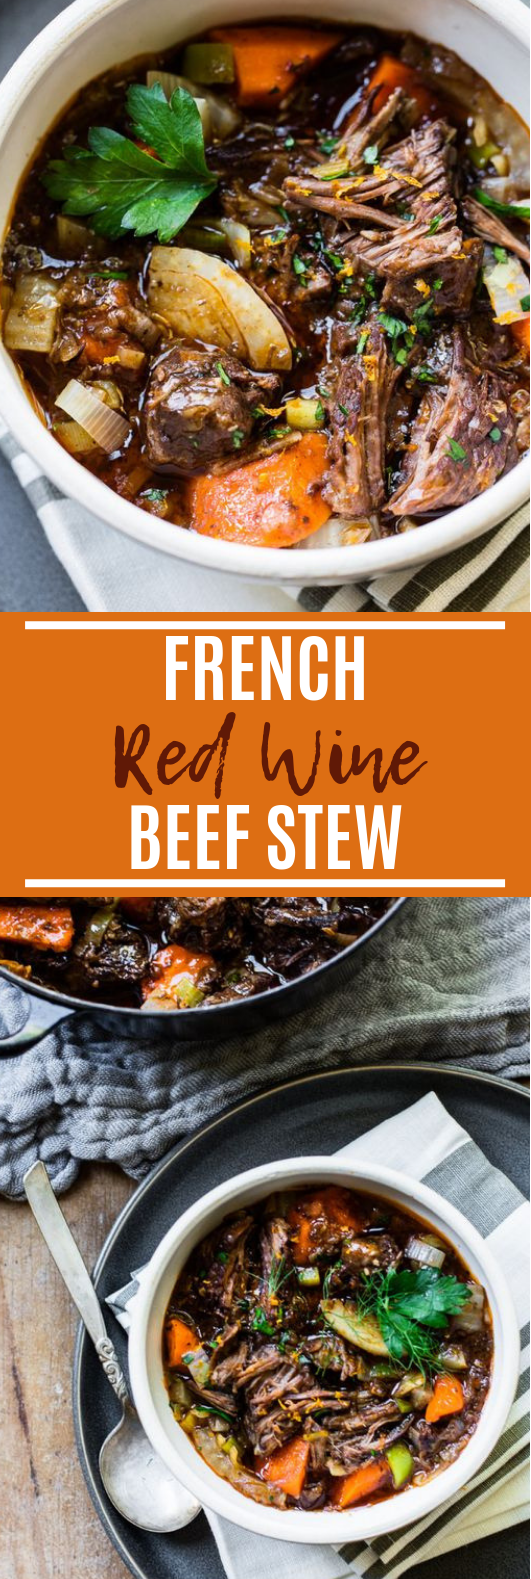 Slow-Cooked Red Wine Beef Stew #dinner #beef